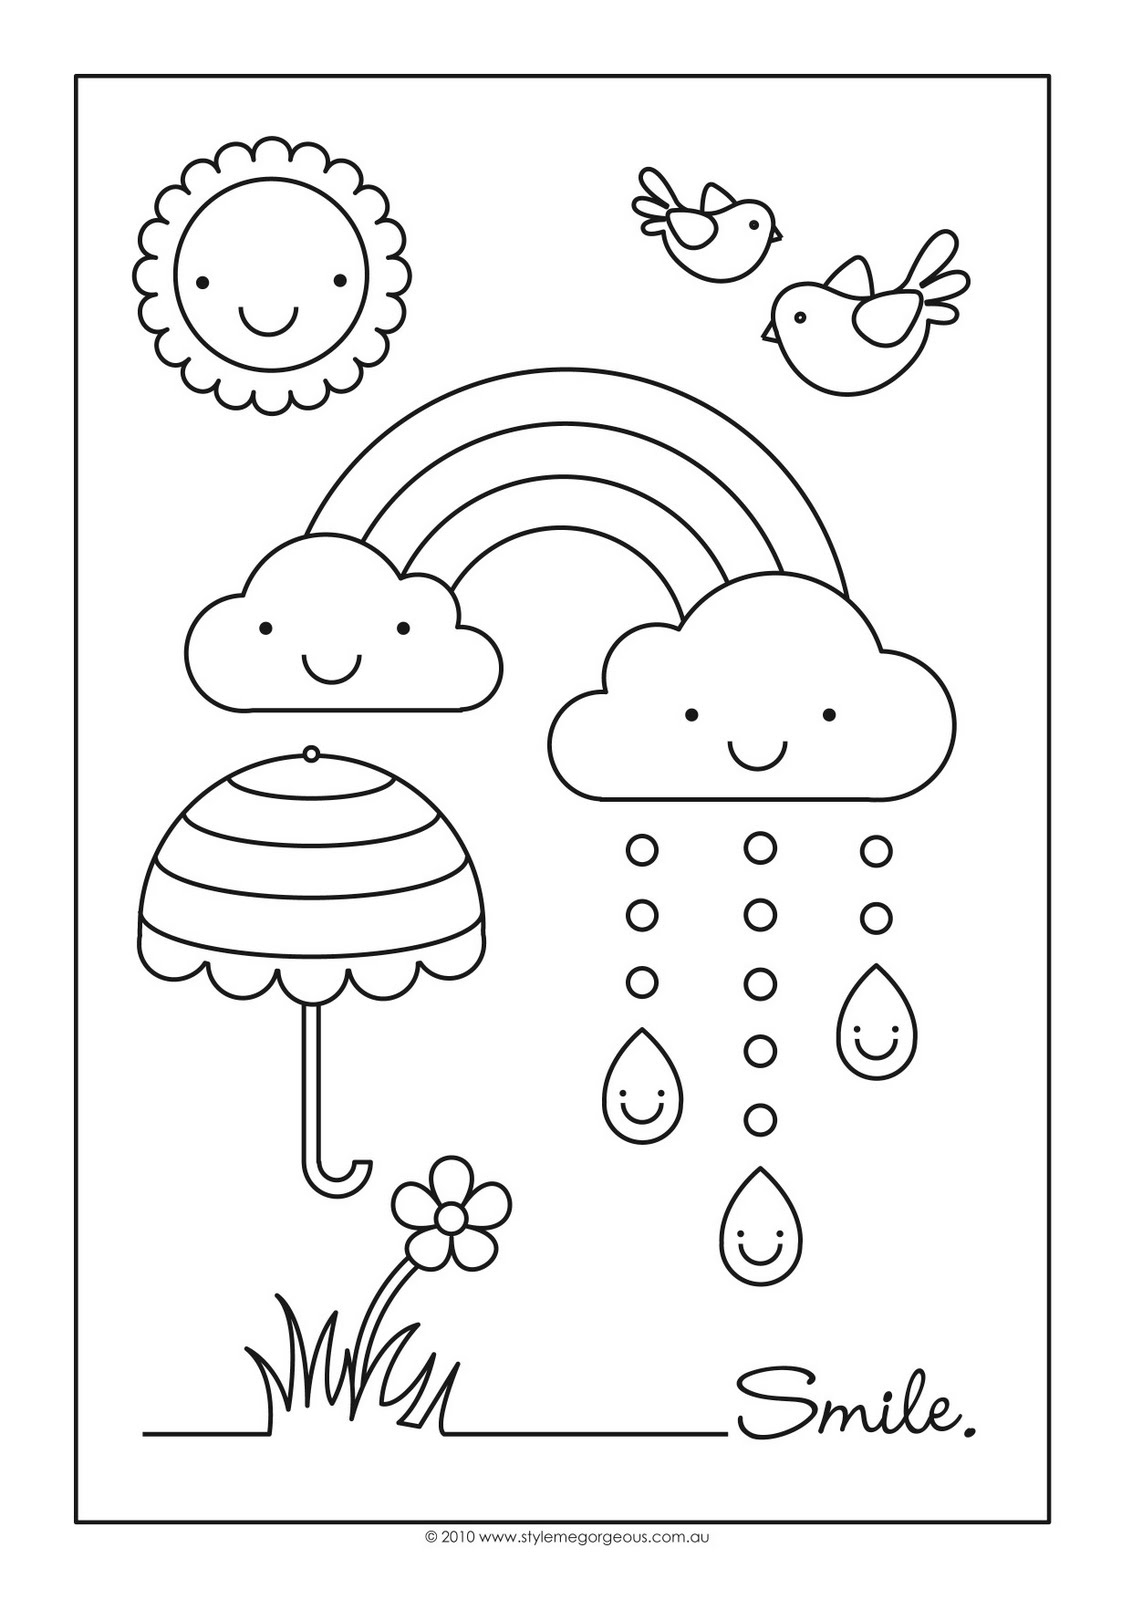 rainbow coloring pages 10 rows - photo#5